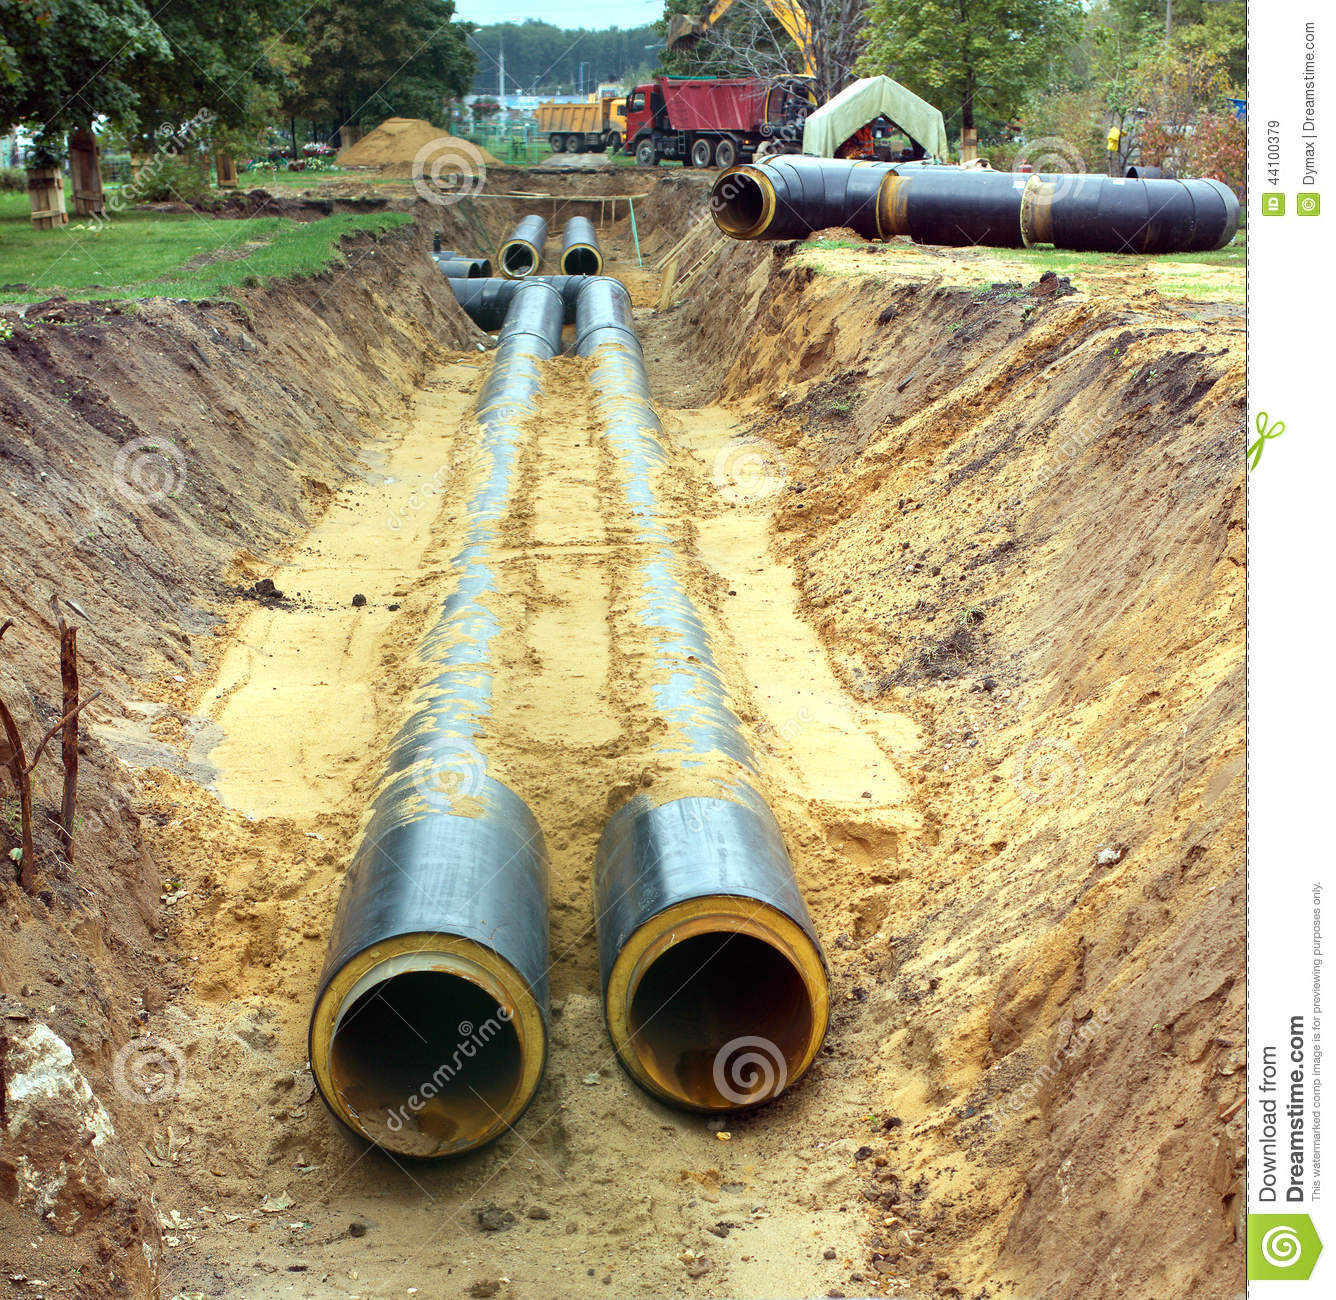 New water pipes mounting in a ground on a cloudy day stock for New water pipes